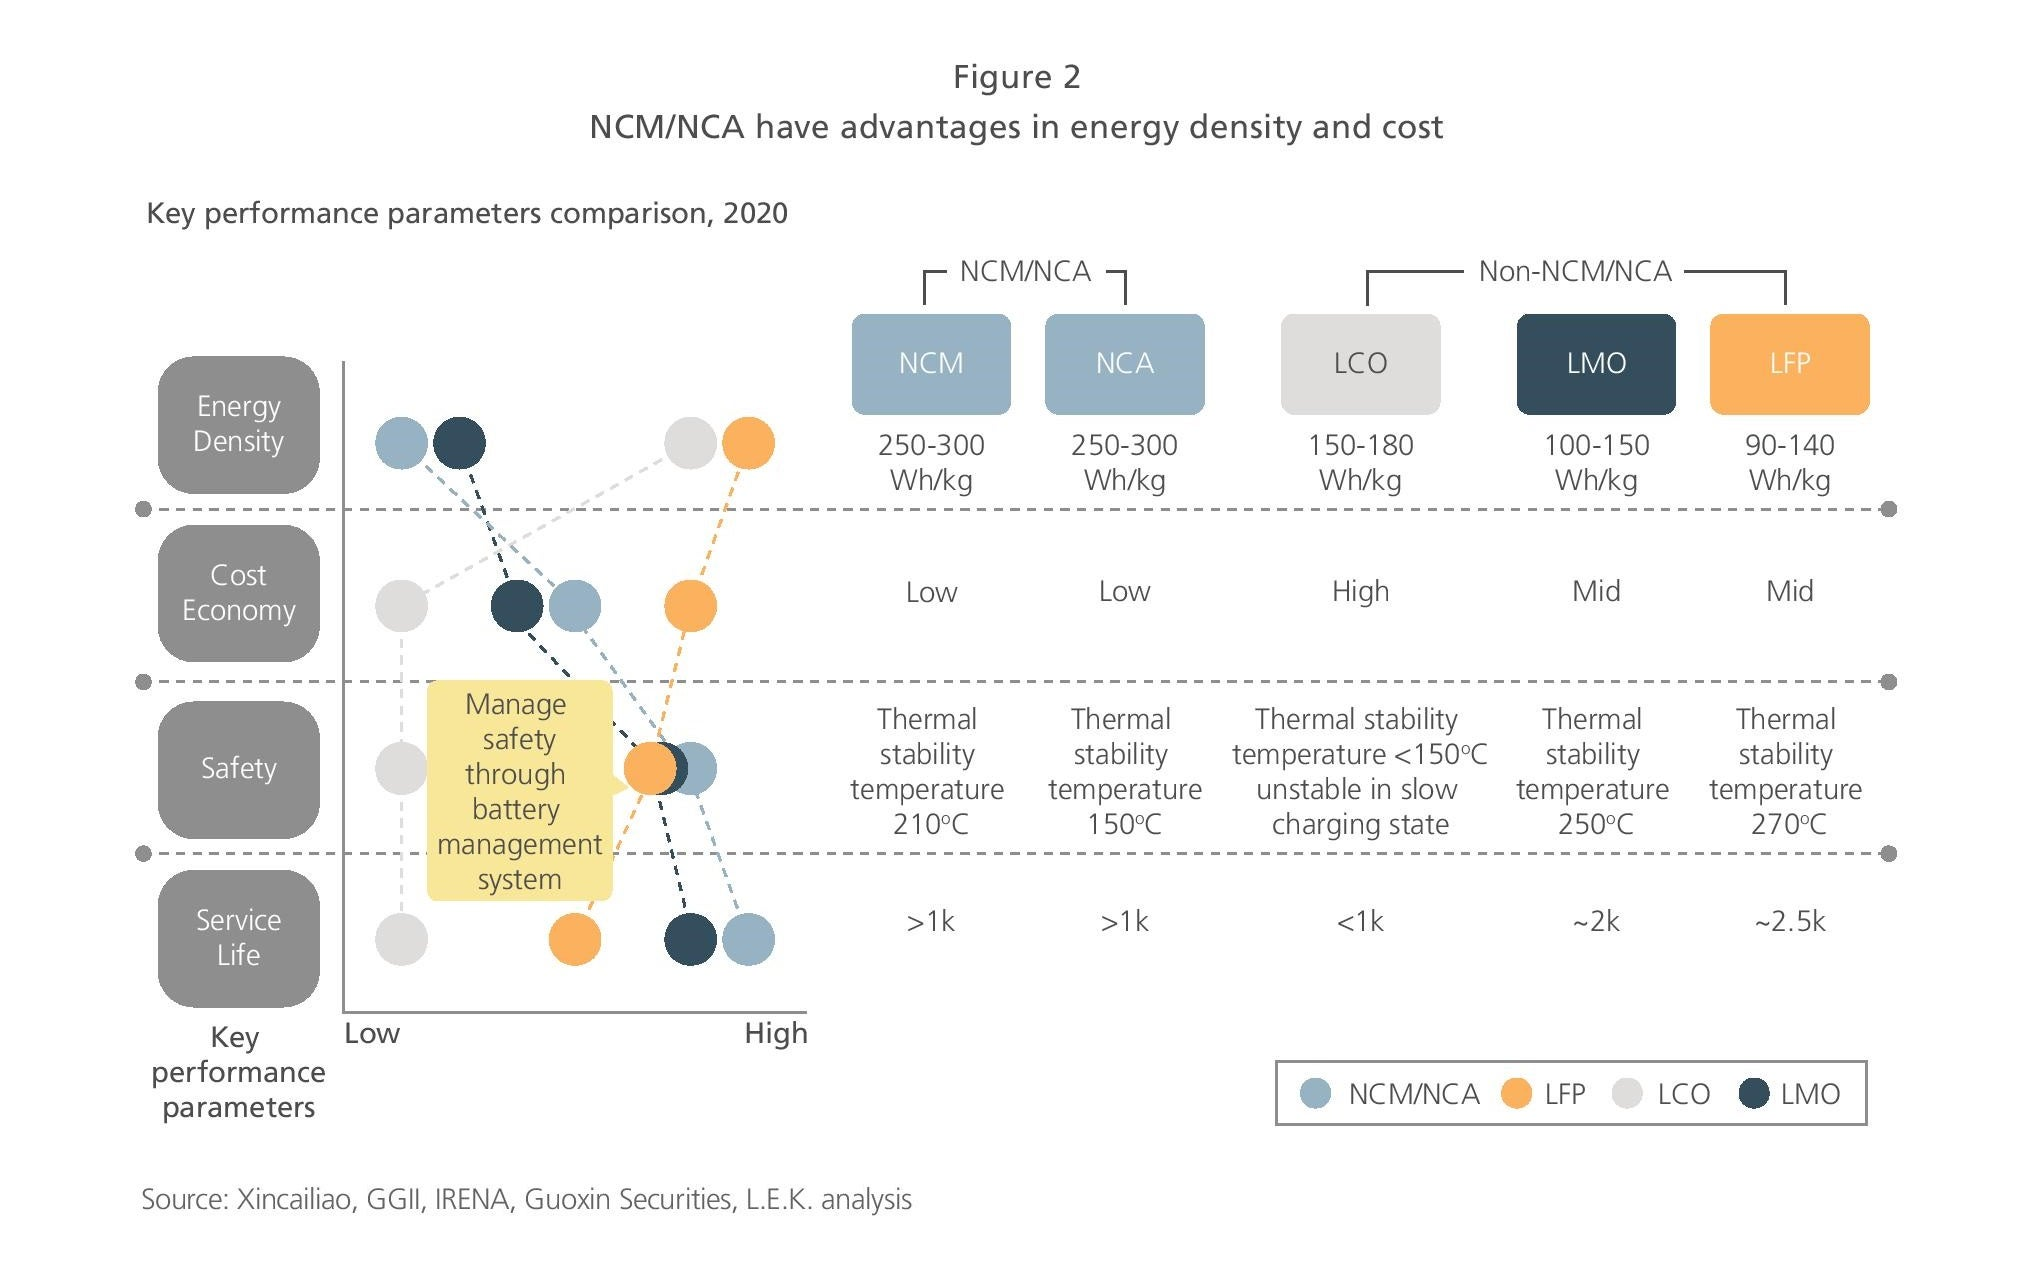 NCM/NCA advantage in energy density and cost